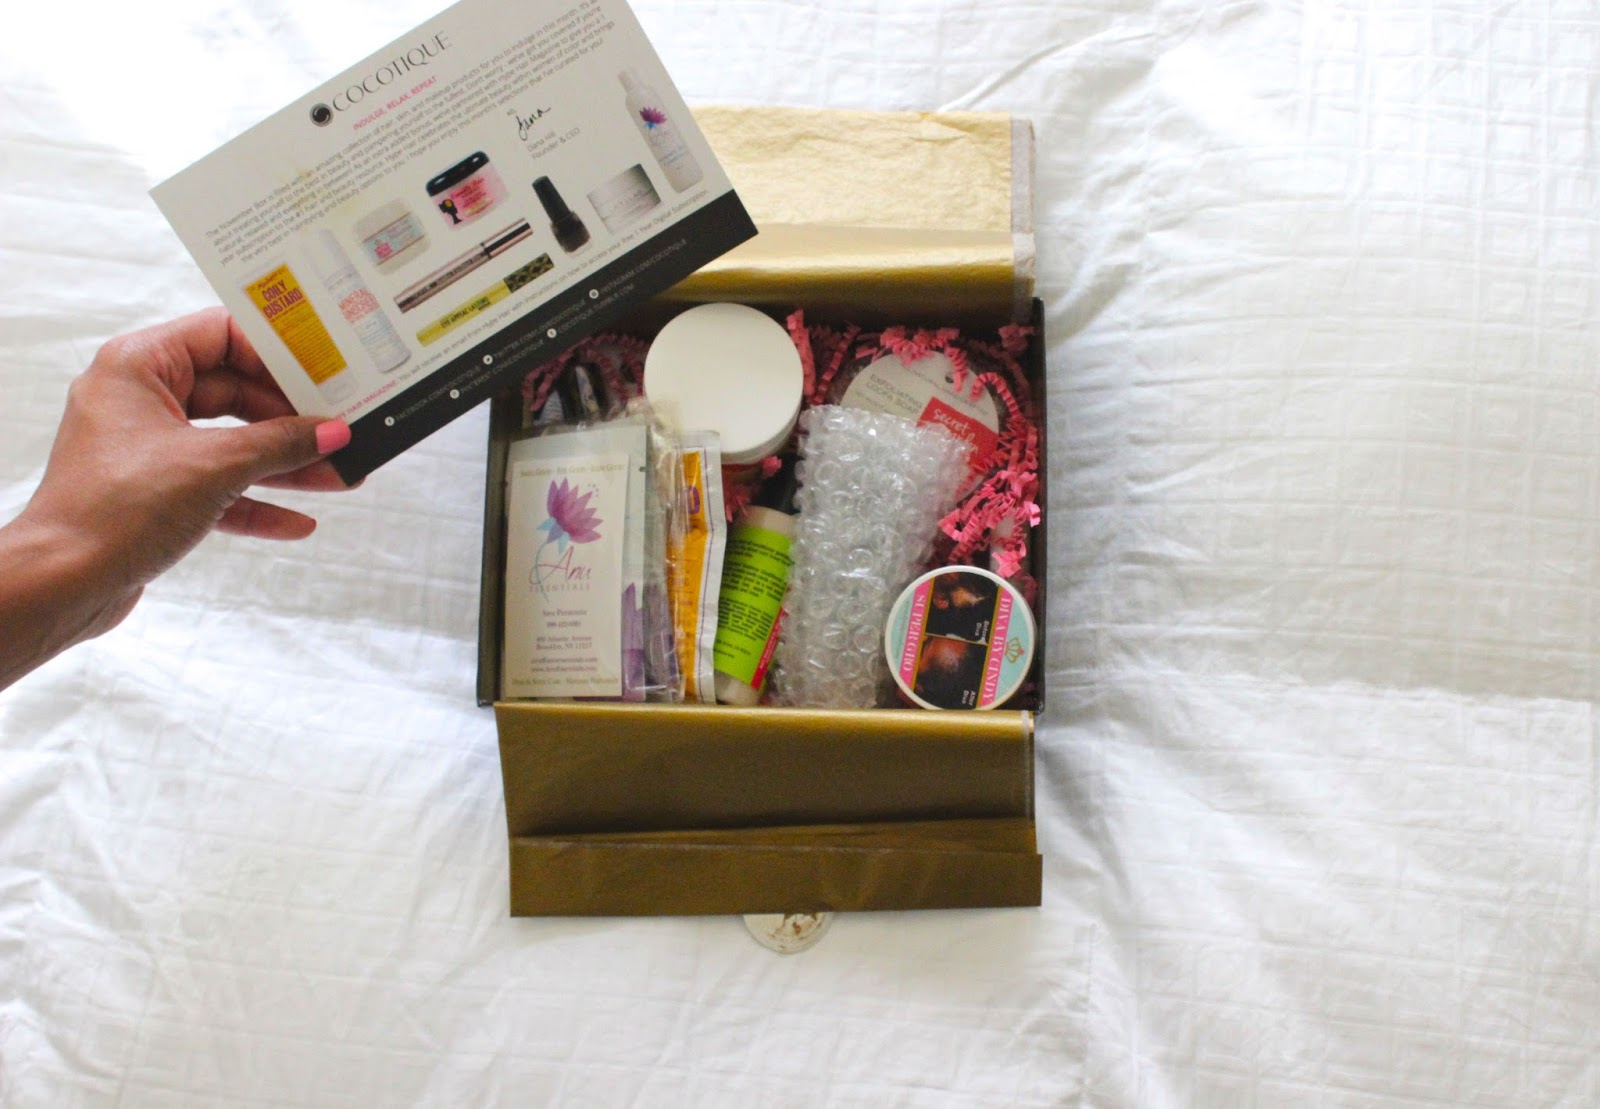 Cocotique November Box